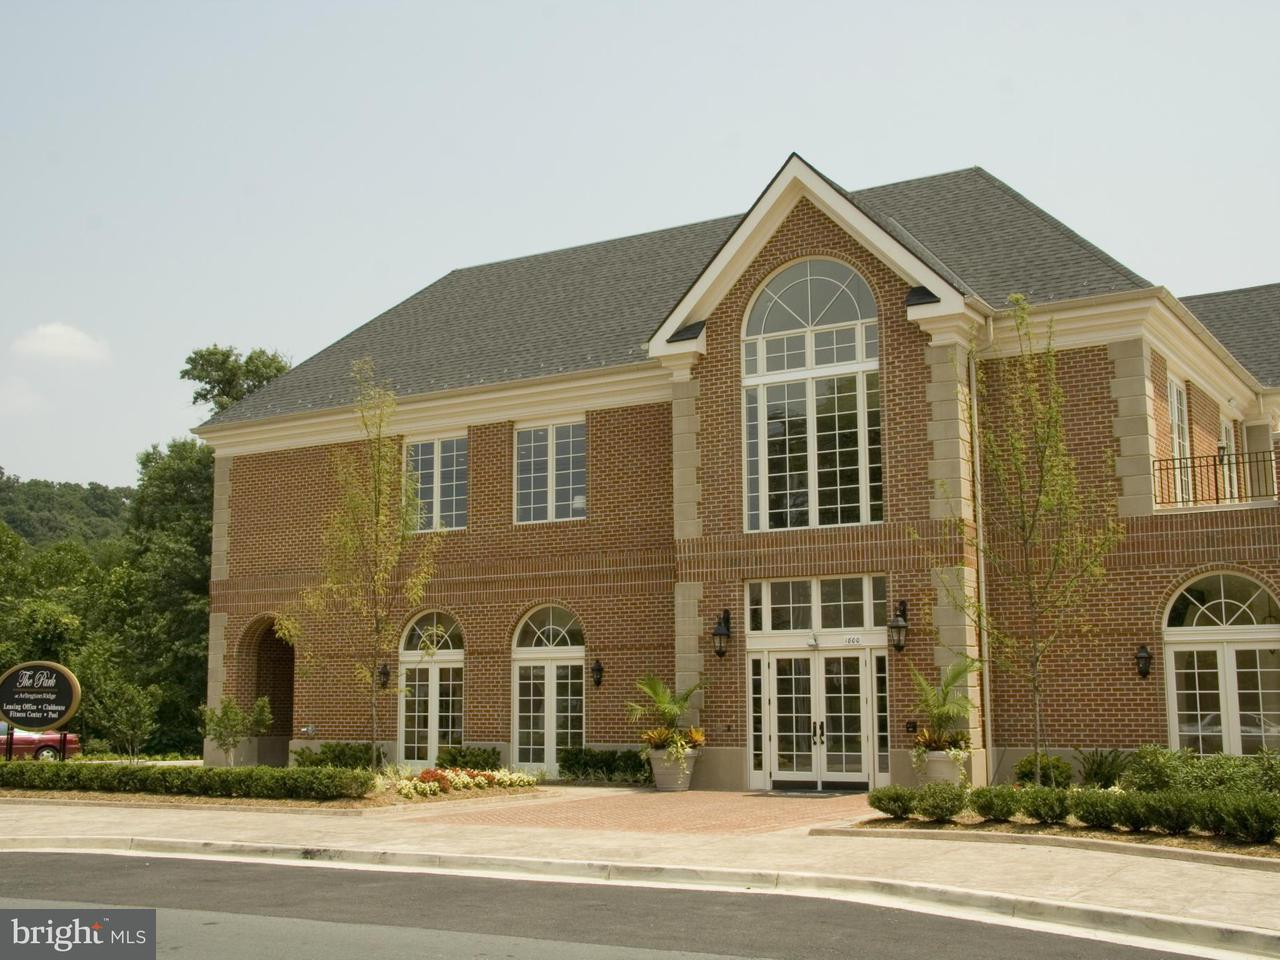 Additional photo for property listing at 1800 S. 26th St #101  Arlington, Virginia 22206 United States